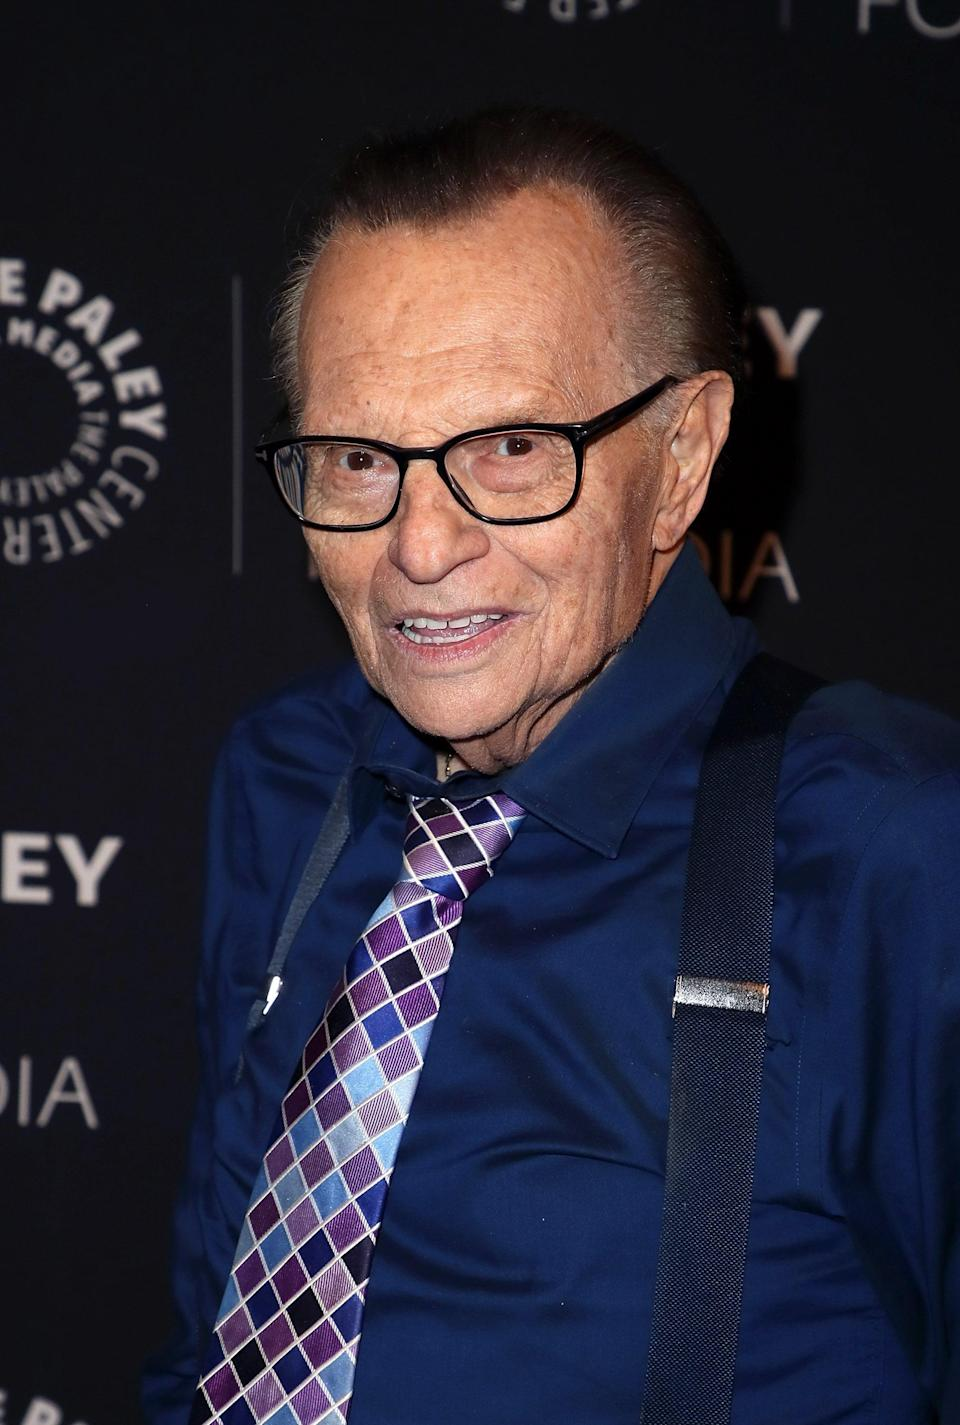 """<p>Longtime TV host and interviewer Larry King died on Jan. 23 at the age of 87. Ora Media <a href=""""https://twitter.com/kingsthings/status/1352960673978880000/photo/2"""" class=""""link rapid-noclick-resp"""" rel=""""nofollow noopener"""" target=""""_blank"""" data-ylk=""""slk:shared the news via his official Twitter account"""">shared the news via his official Twitter account</a>, writing, """"With profound sadness, Ora Media announces the death of our co-founder, host, and friend Larry King, who passed away this morning at age 87 at Cedars-Sinai Medical Center in Los Angeles."""" </p> <p>""""For 63 years and across the platforms of radio, television and digital media, Larry's many thousands of interviews, awards, and global acclaim stand as a testament to his unique and lasting talent as a broadcaster. Additionally, while it was his name appearing in the shows' titles, Larry always viewed his interview subjects as the true stars of his programs, and himself as merely an unbiased conduit between the guest and audience. Whether he was interviewing a U.S. president, foreign leader, celebrity, scandal-ridden personage, or an everyman, Larry liked to ask short, direct, and uncomplicated questions. He believed concise questions usually provided the best answers, and he was not wrong in that belief.""""</p>"""